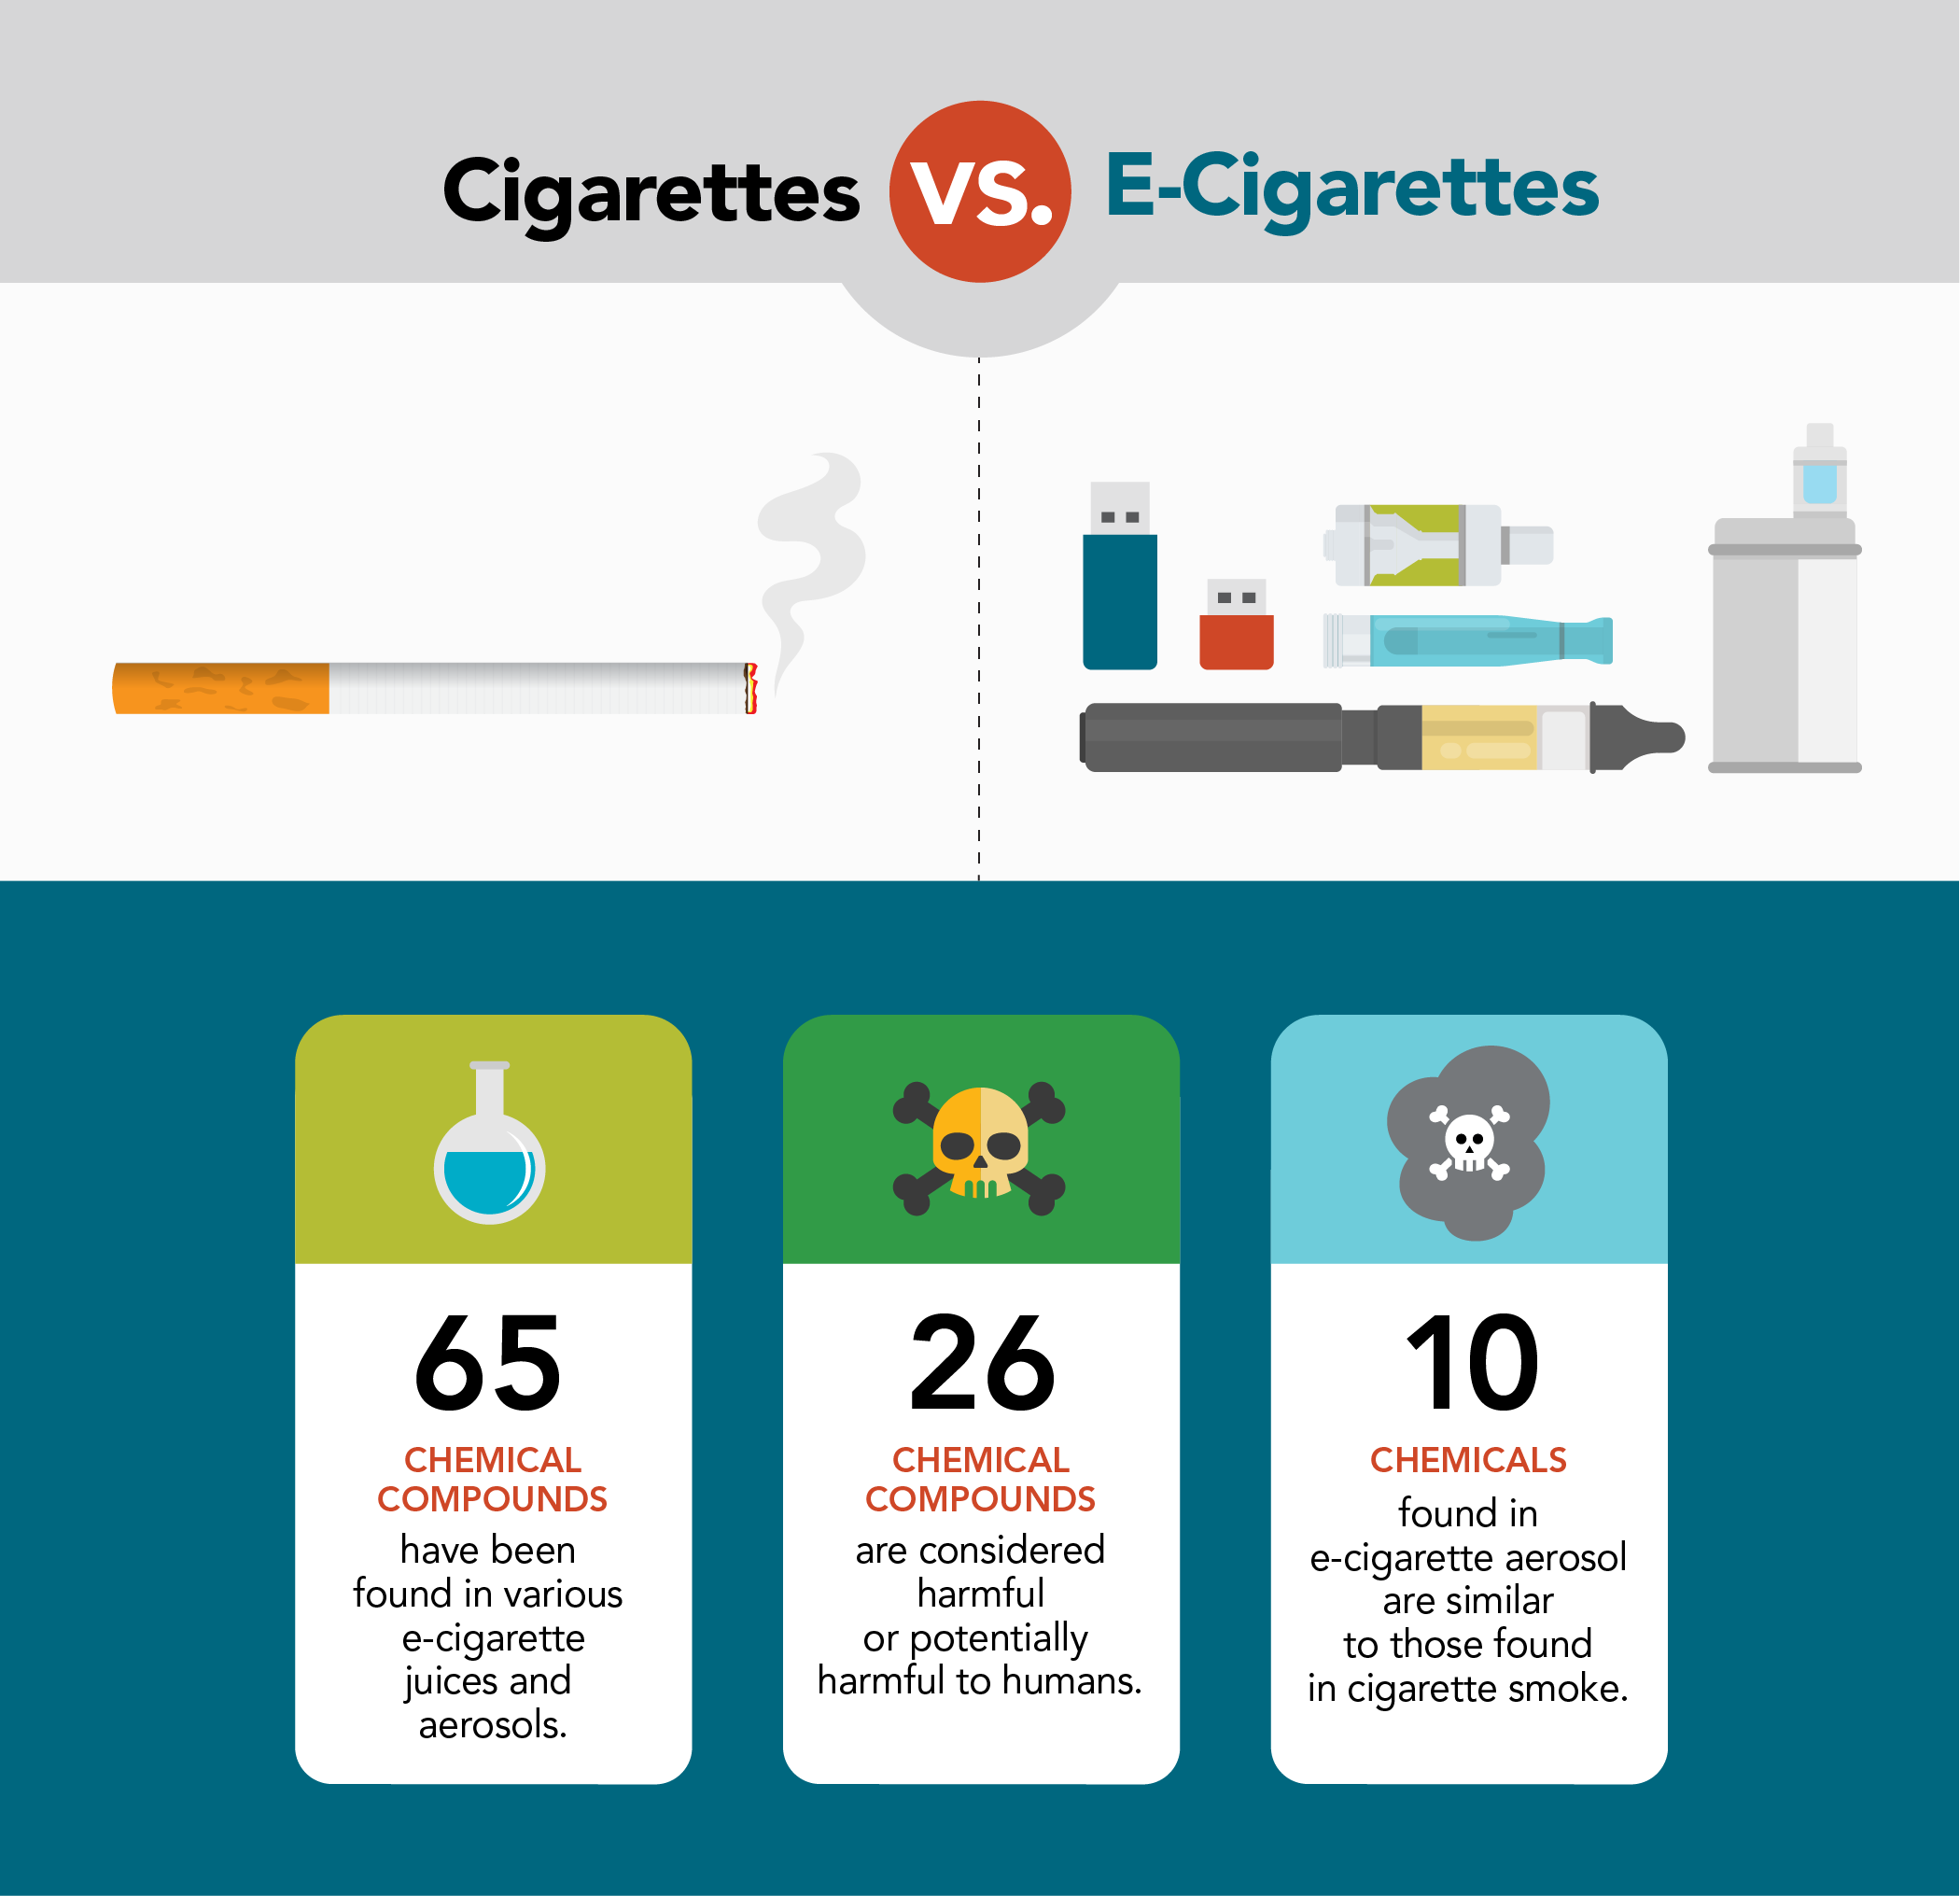 A chart comparing cigarettes to e-cigarettes. 65 chemical compounds have been found in various e-cigarette juices and aerosols. 26 of those chemical compunds found are considered harmful or potentially harmful to your health. 10 chemicals found in e-cig aerosol are similar to those found in cigarette smoke.